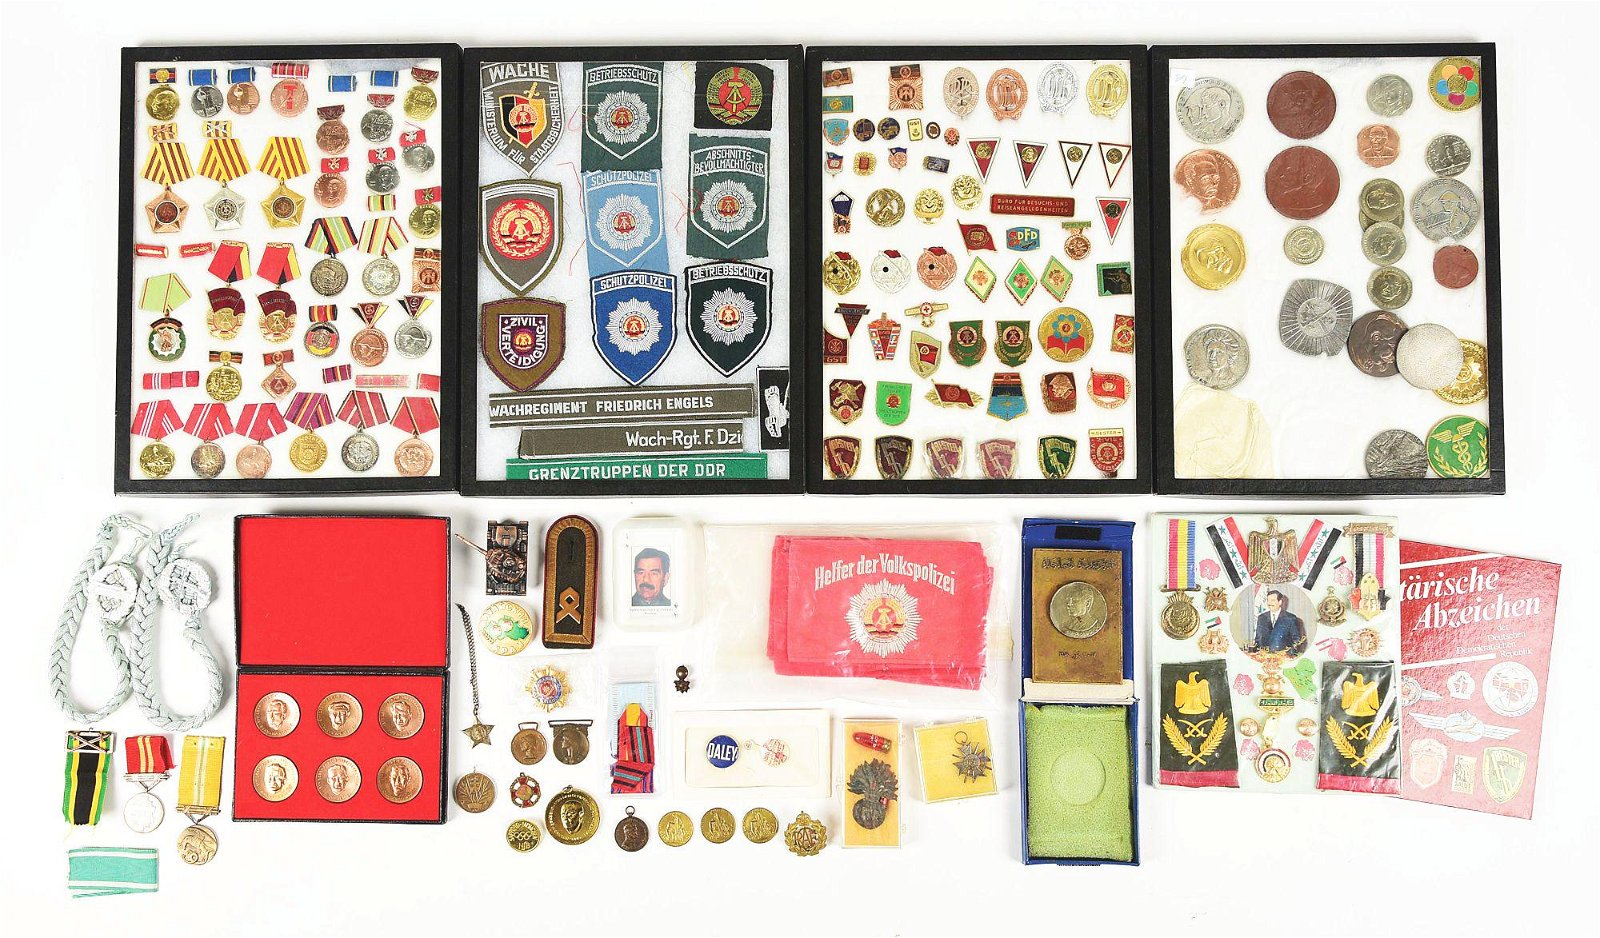 VERY LARGE LOT OF EAST GERMAN DDR & IRAQI MEDALS AND